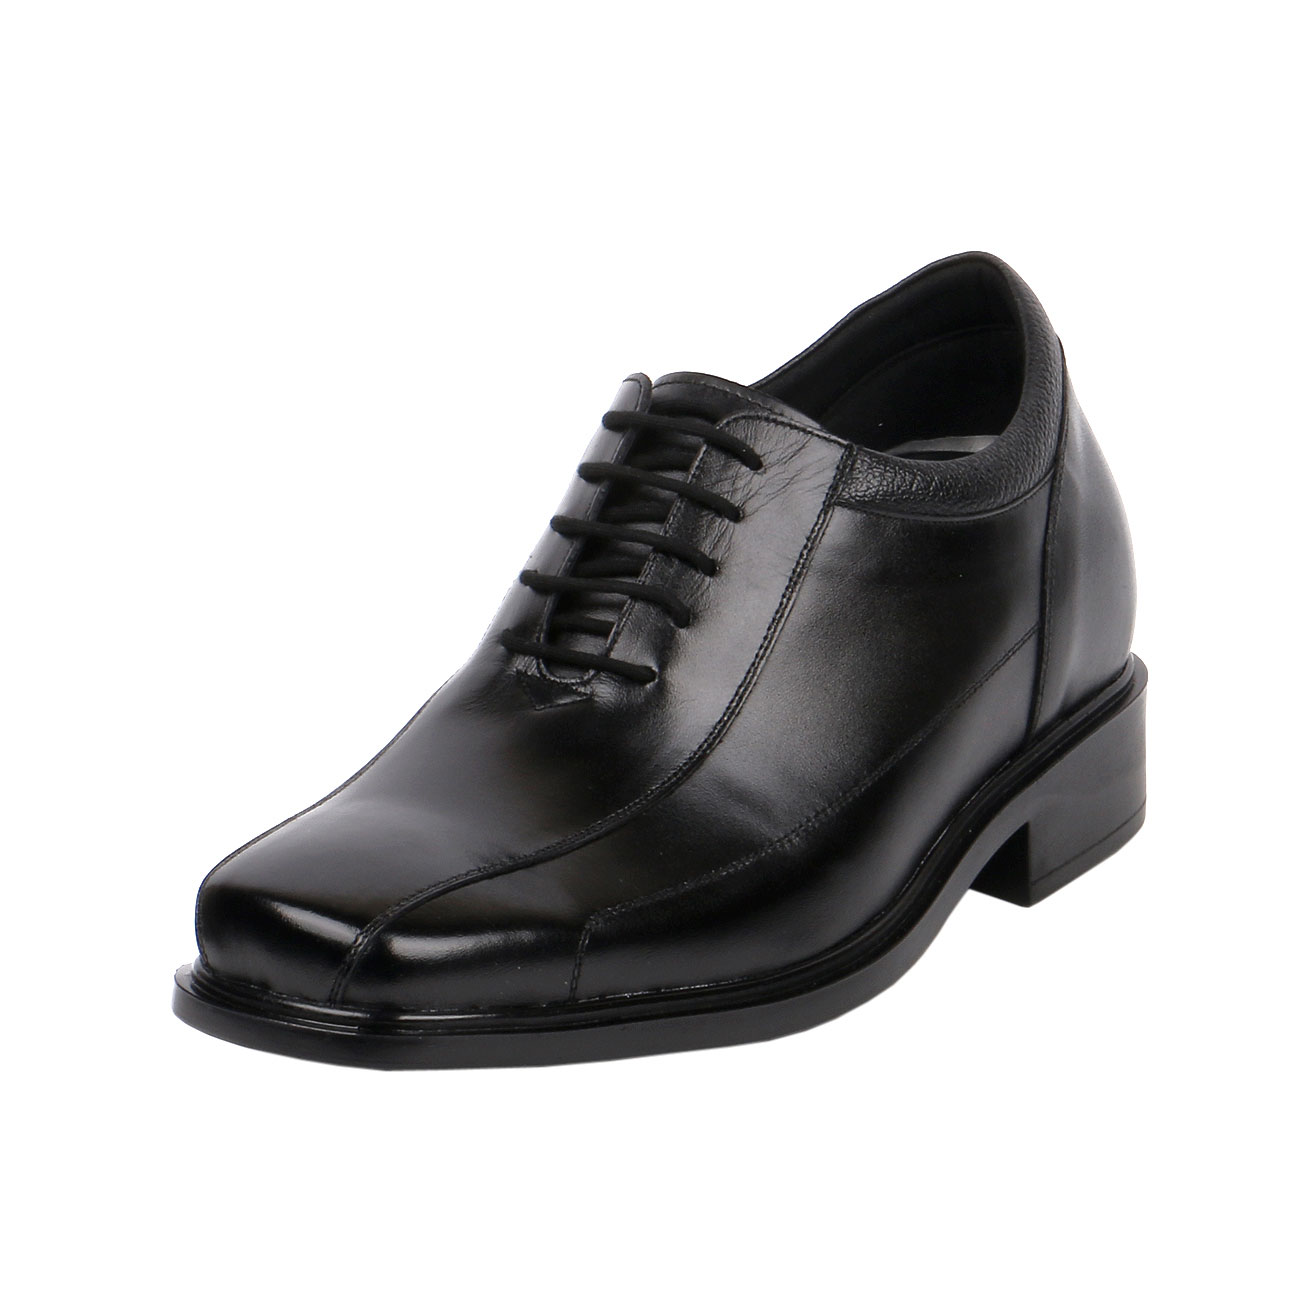 Tall Shoes | Height Increasing Shoes | High Heel Shoes for Men ...